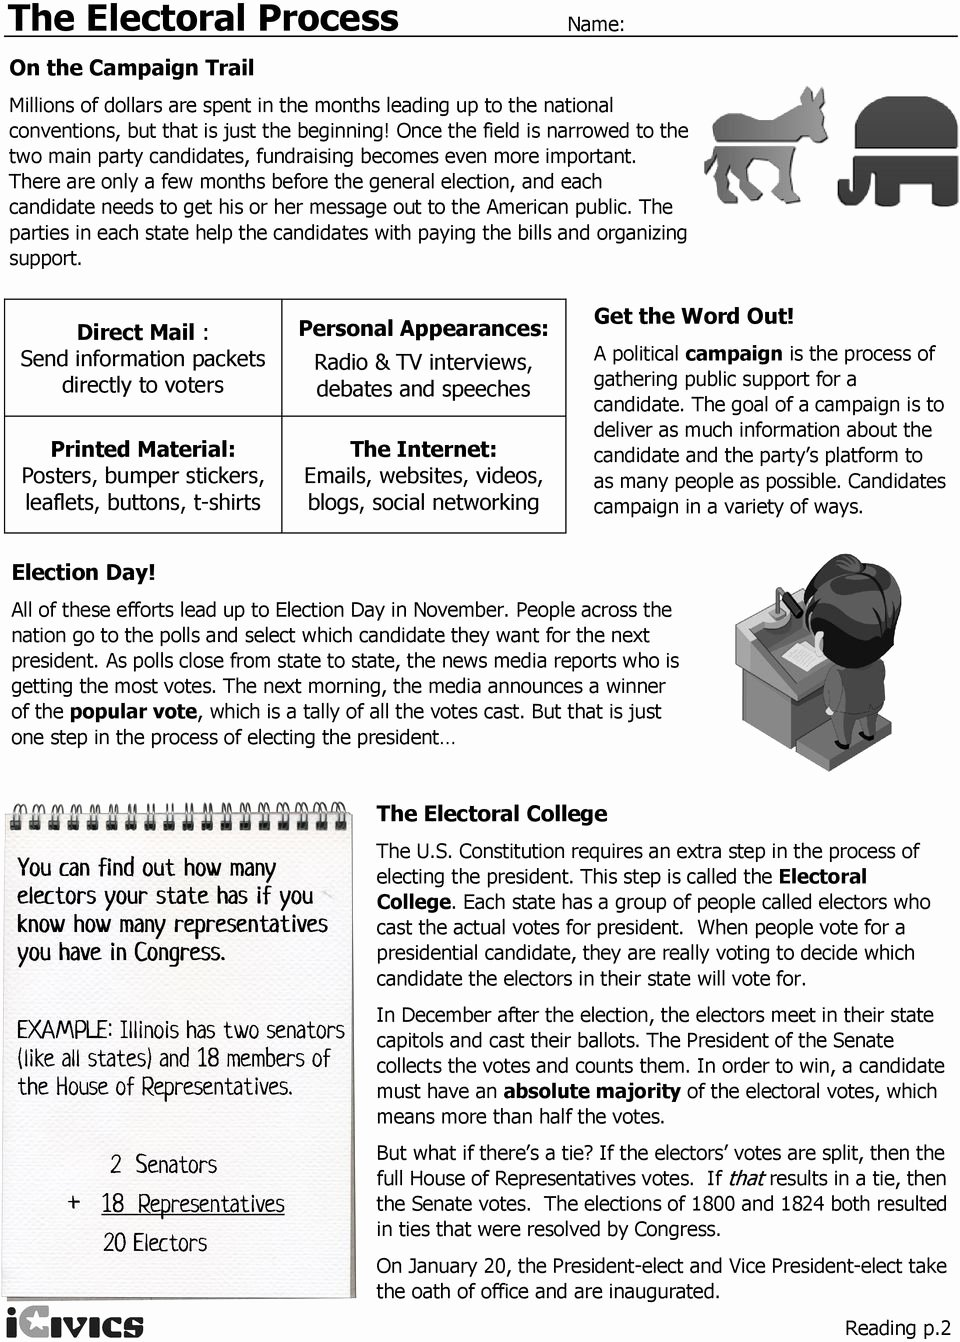 The Electoral Process Worksheet Best Of the Electoral Process Step by Step the Worksheet Activity